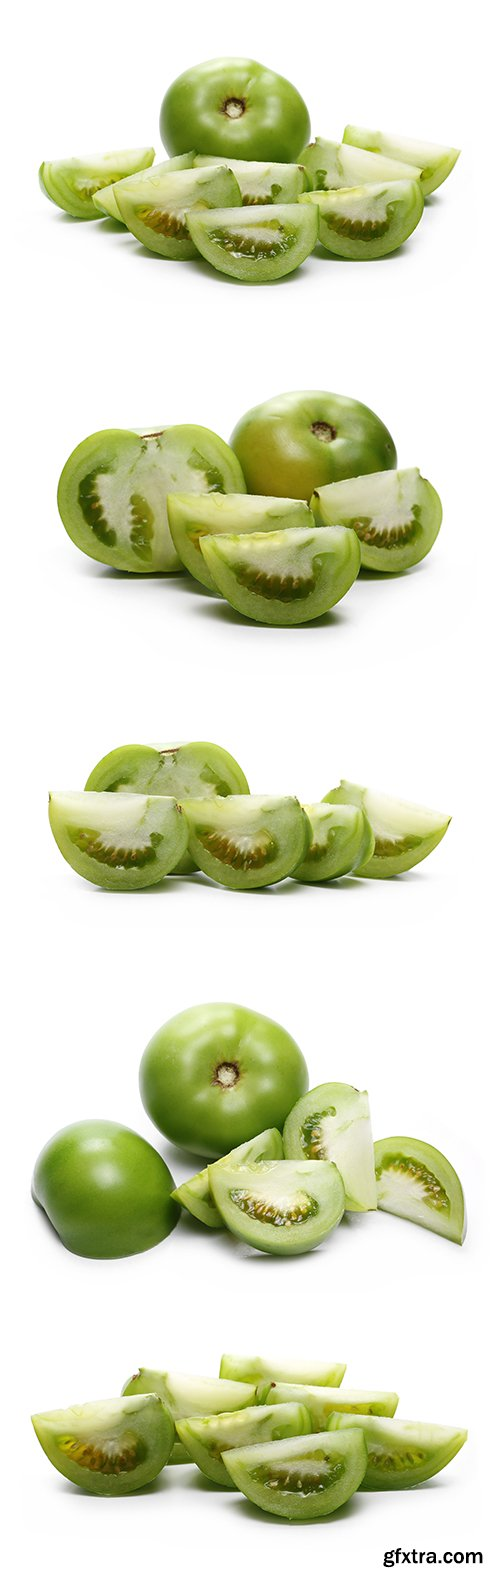 Green Tomato Slices Isolated - 10xJPGs